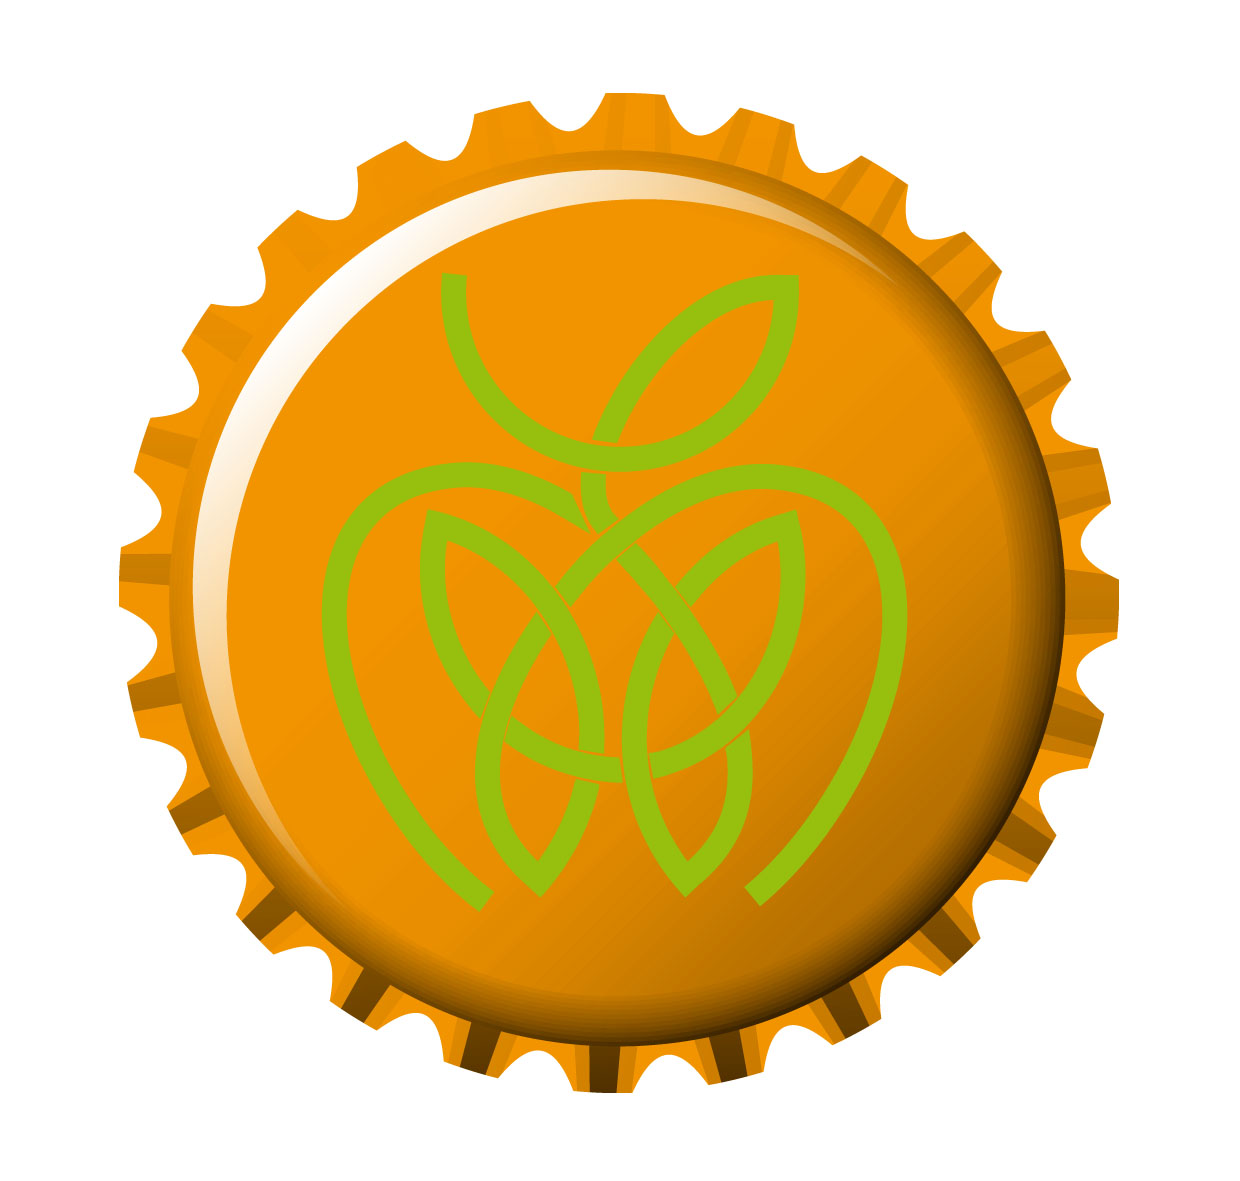 Beer Cap Clipart - ClipArt Best